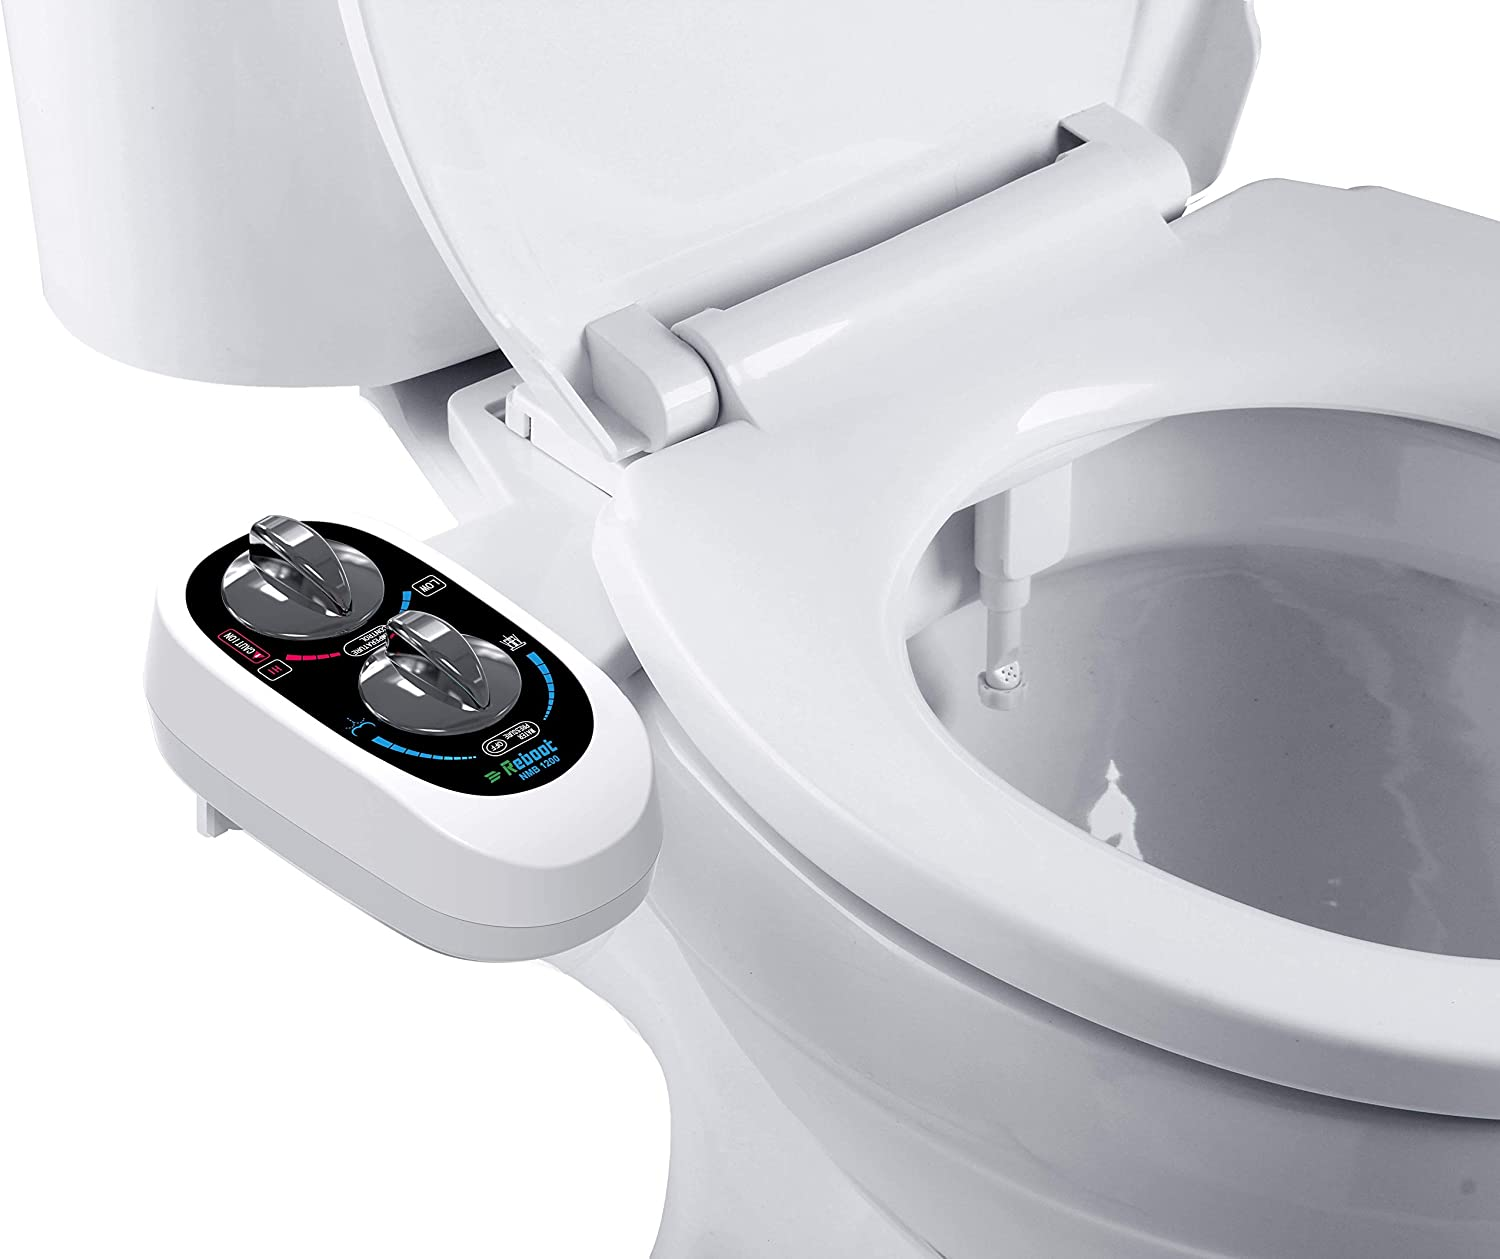 AMAZING FORCE Hot and Cold Bidet Attachment for Toilet Non-Electric Bidet Toilet Attachment with Self-cleaning Dual Nozzle Toilet Bidet with Brass Components Easy to Install